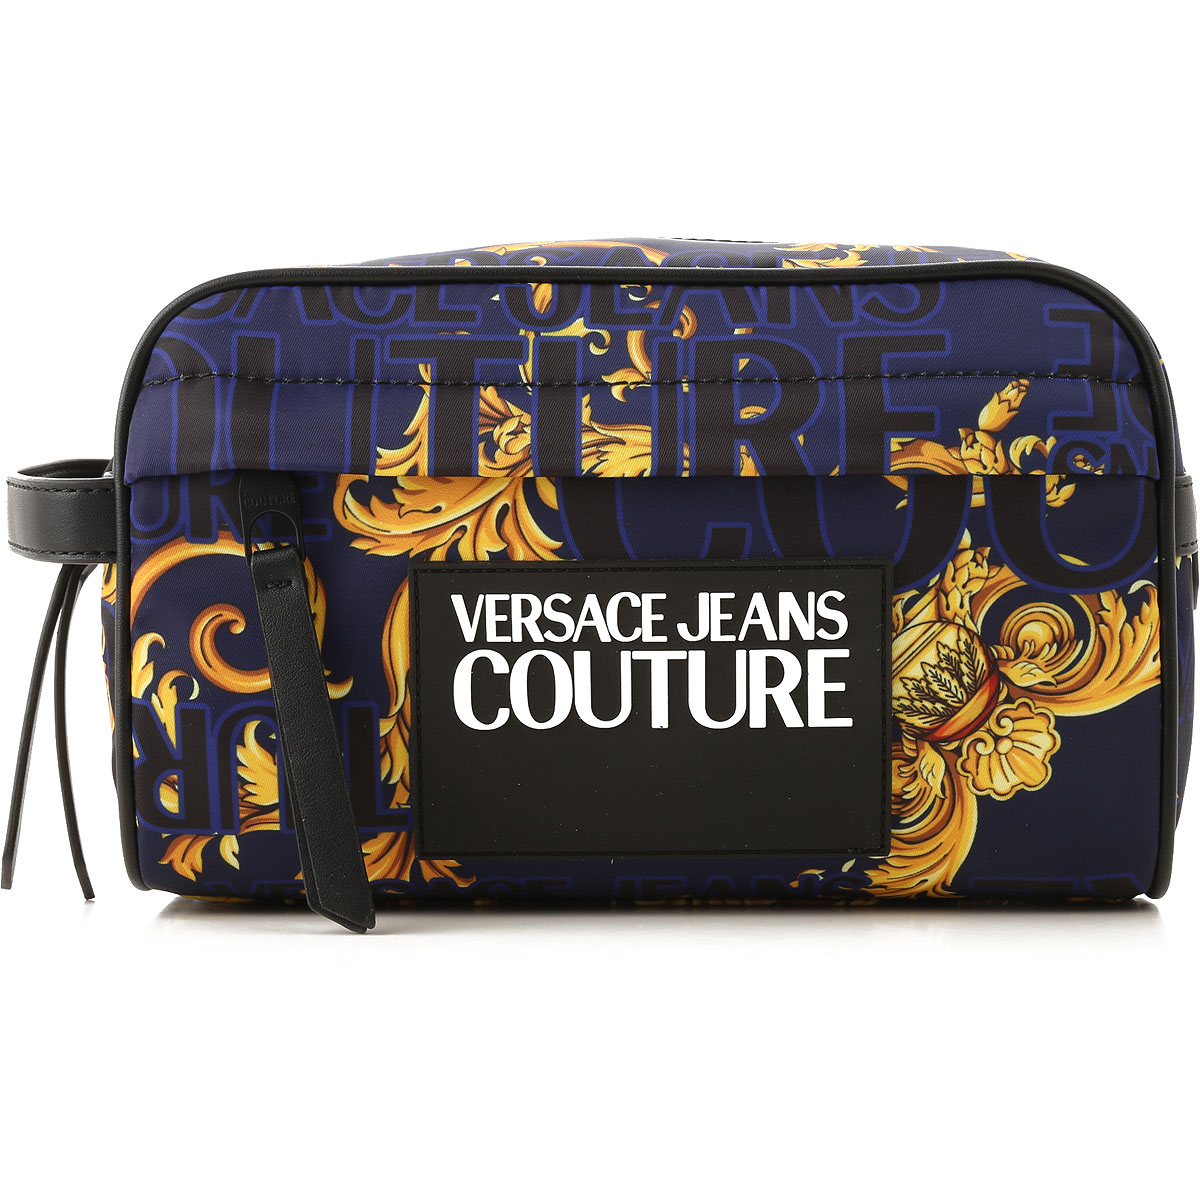 Versace Jeans Couture Toiletry Bag for Men On Sale, Blue, Nylon, 2019